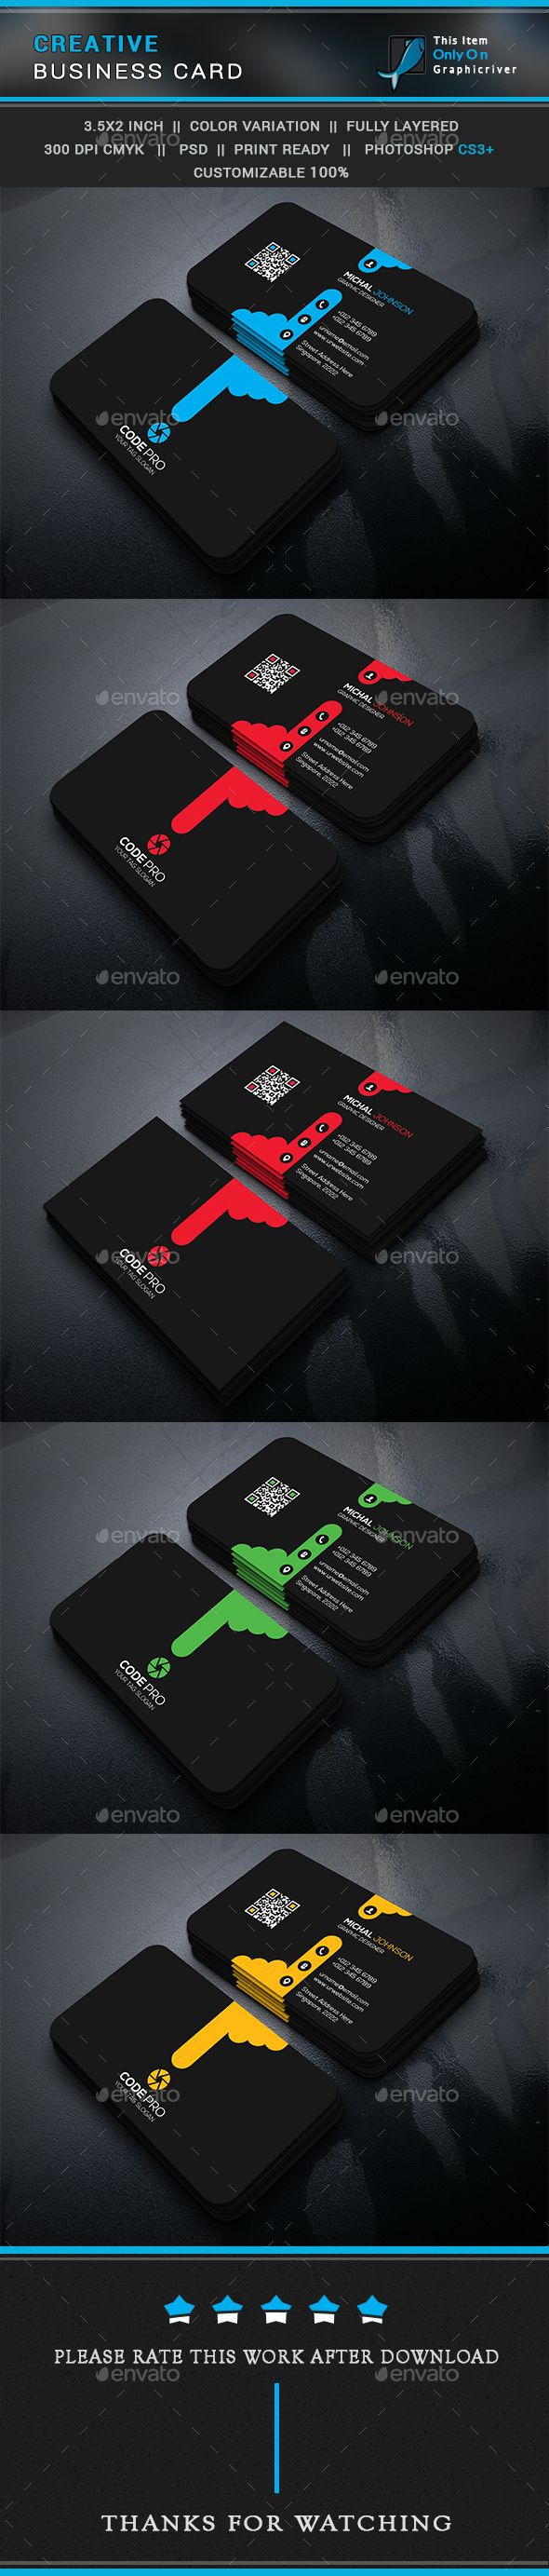 30 Best A Oa Obusiness Card Images On Pinterest Business Cards Carte